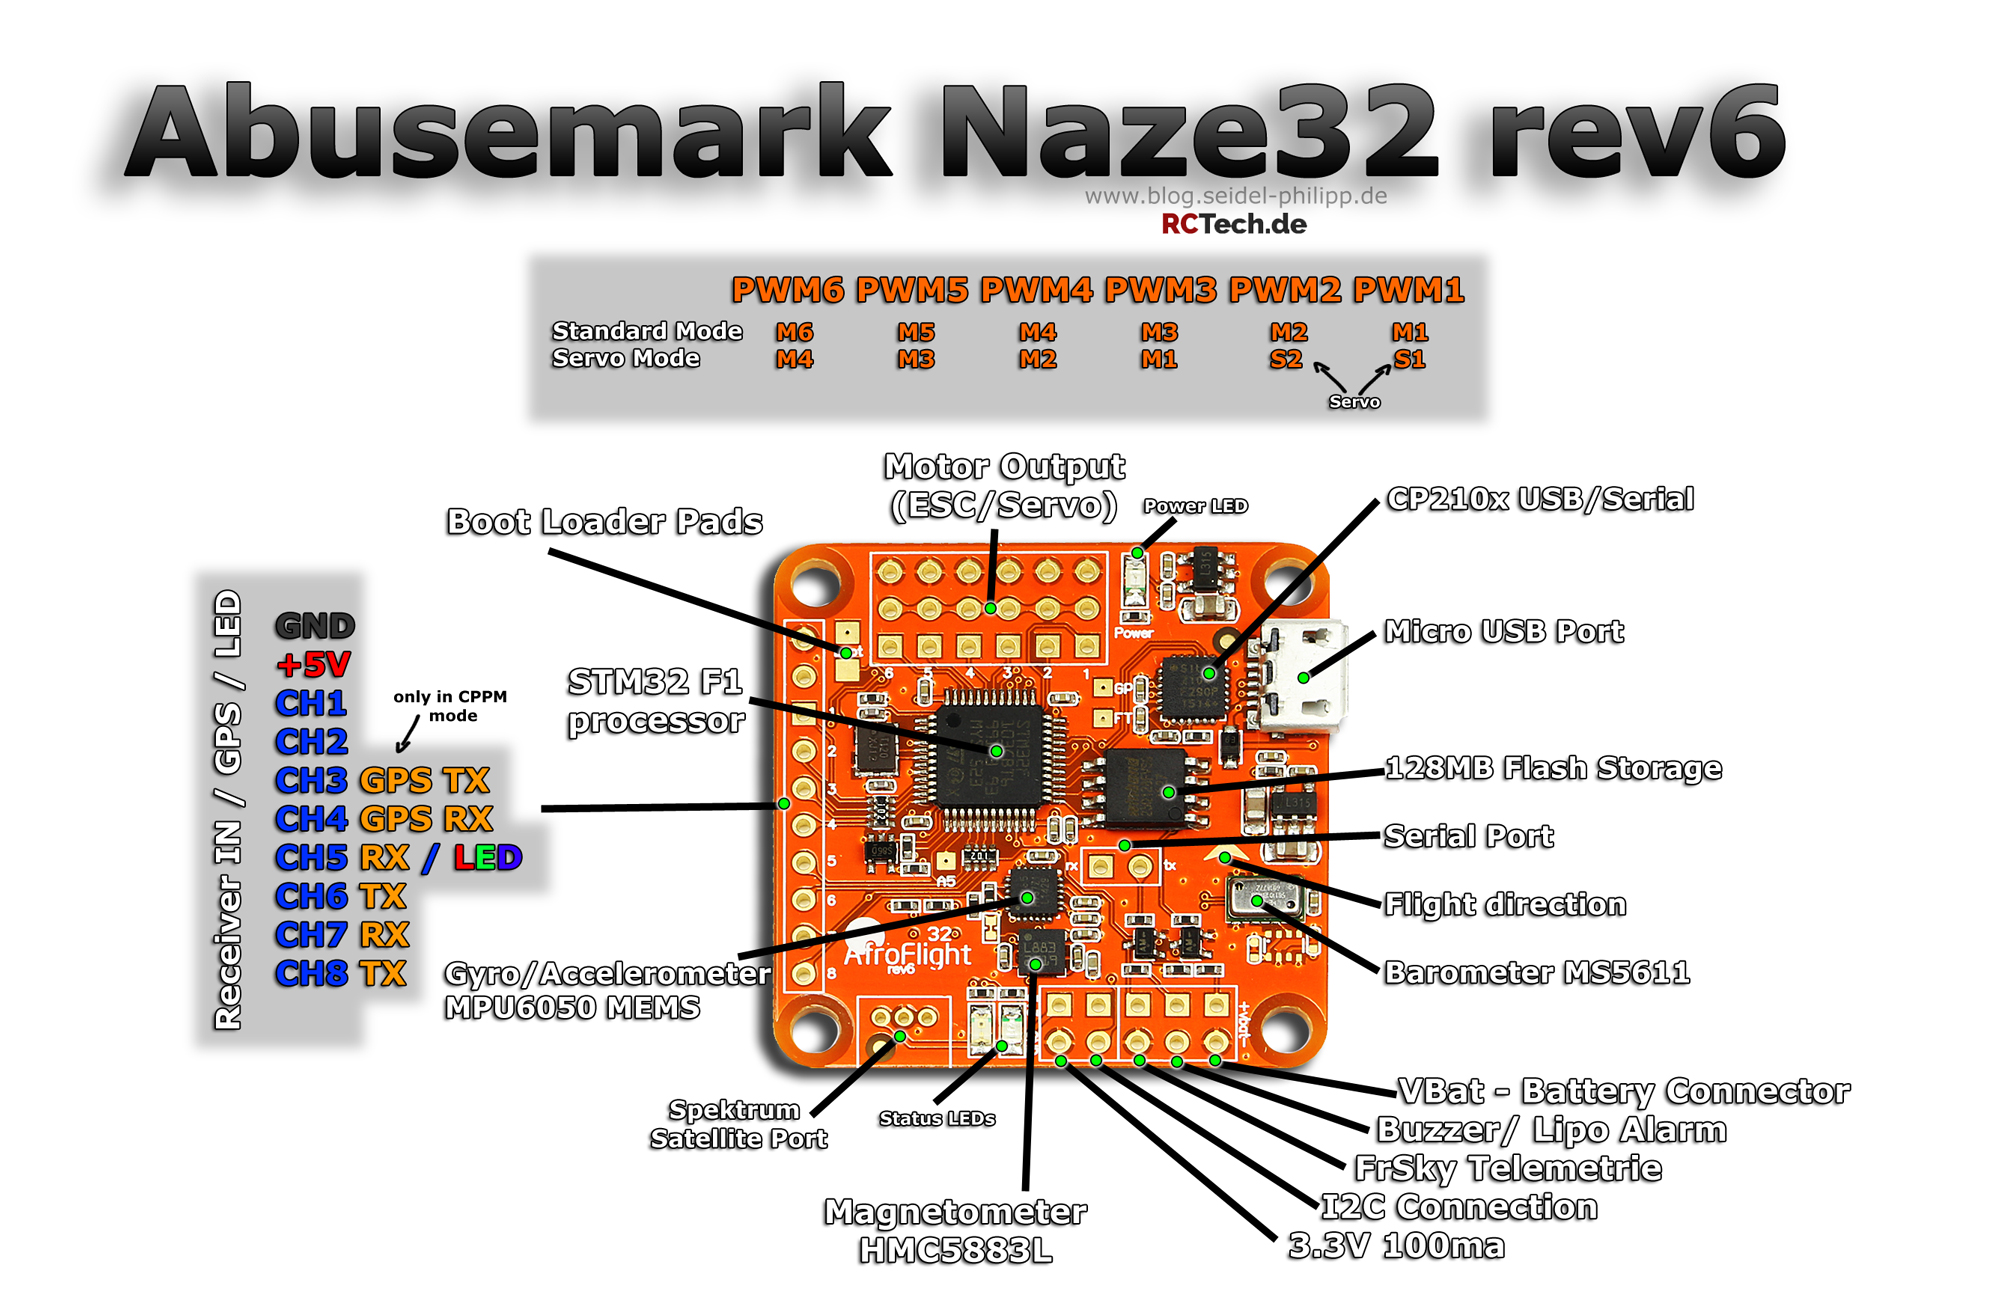 Naze32 rev6 Pinlayout